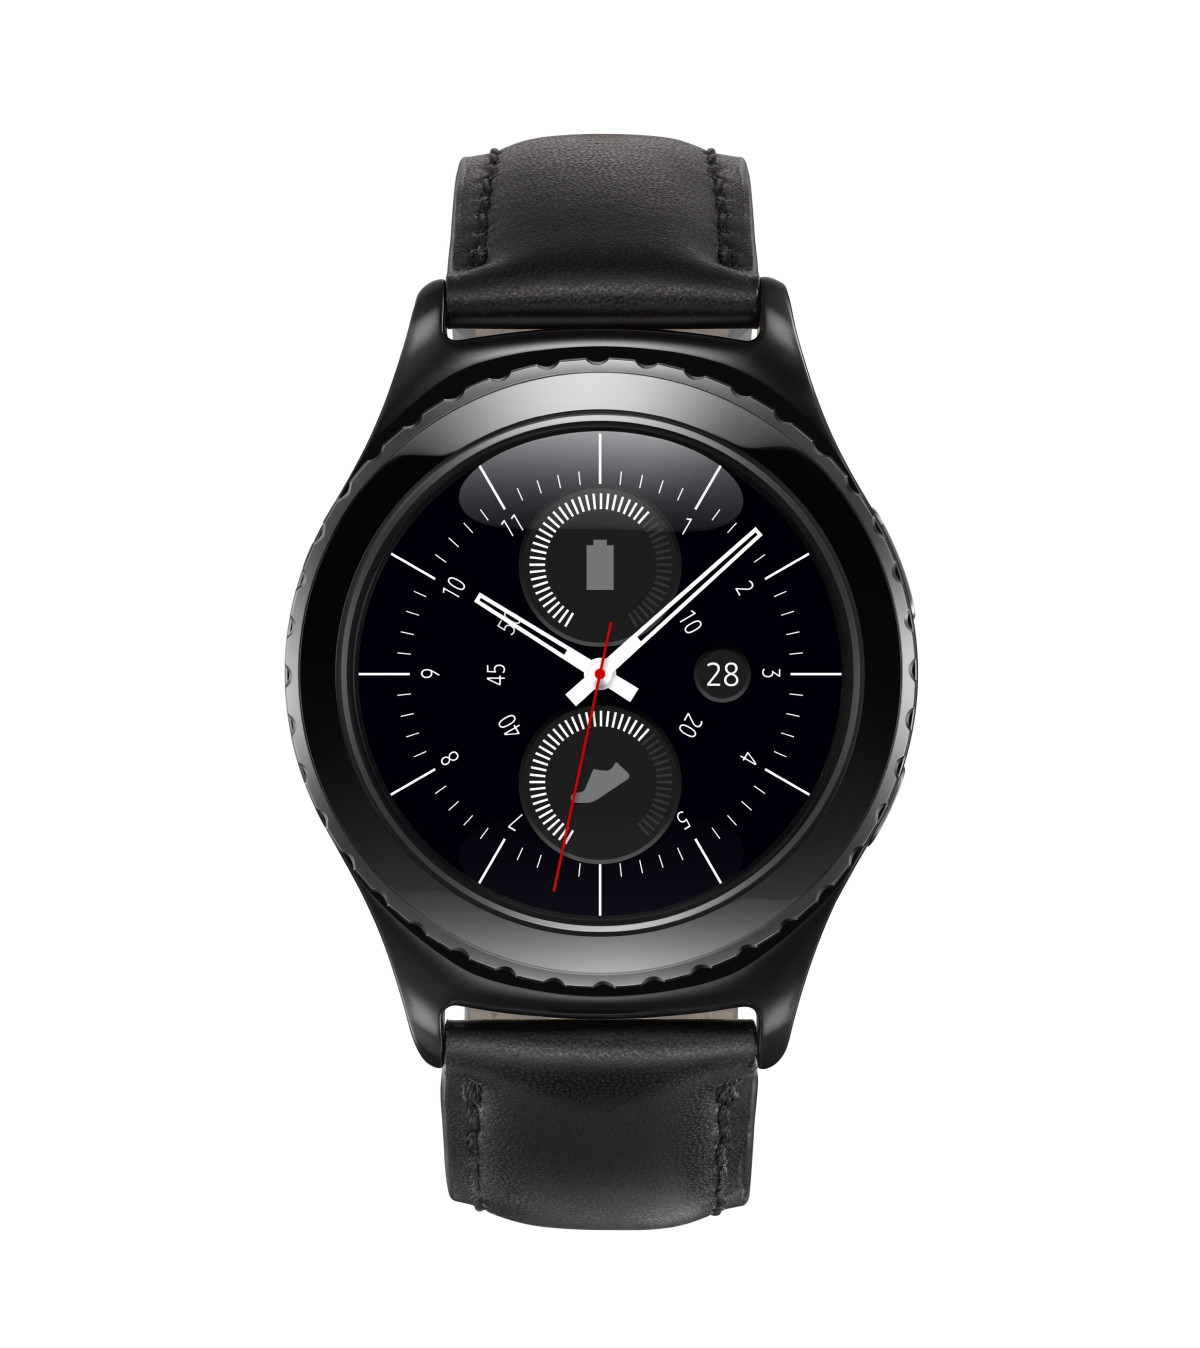 Samsung introduces the Gear S2 smartwatch